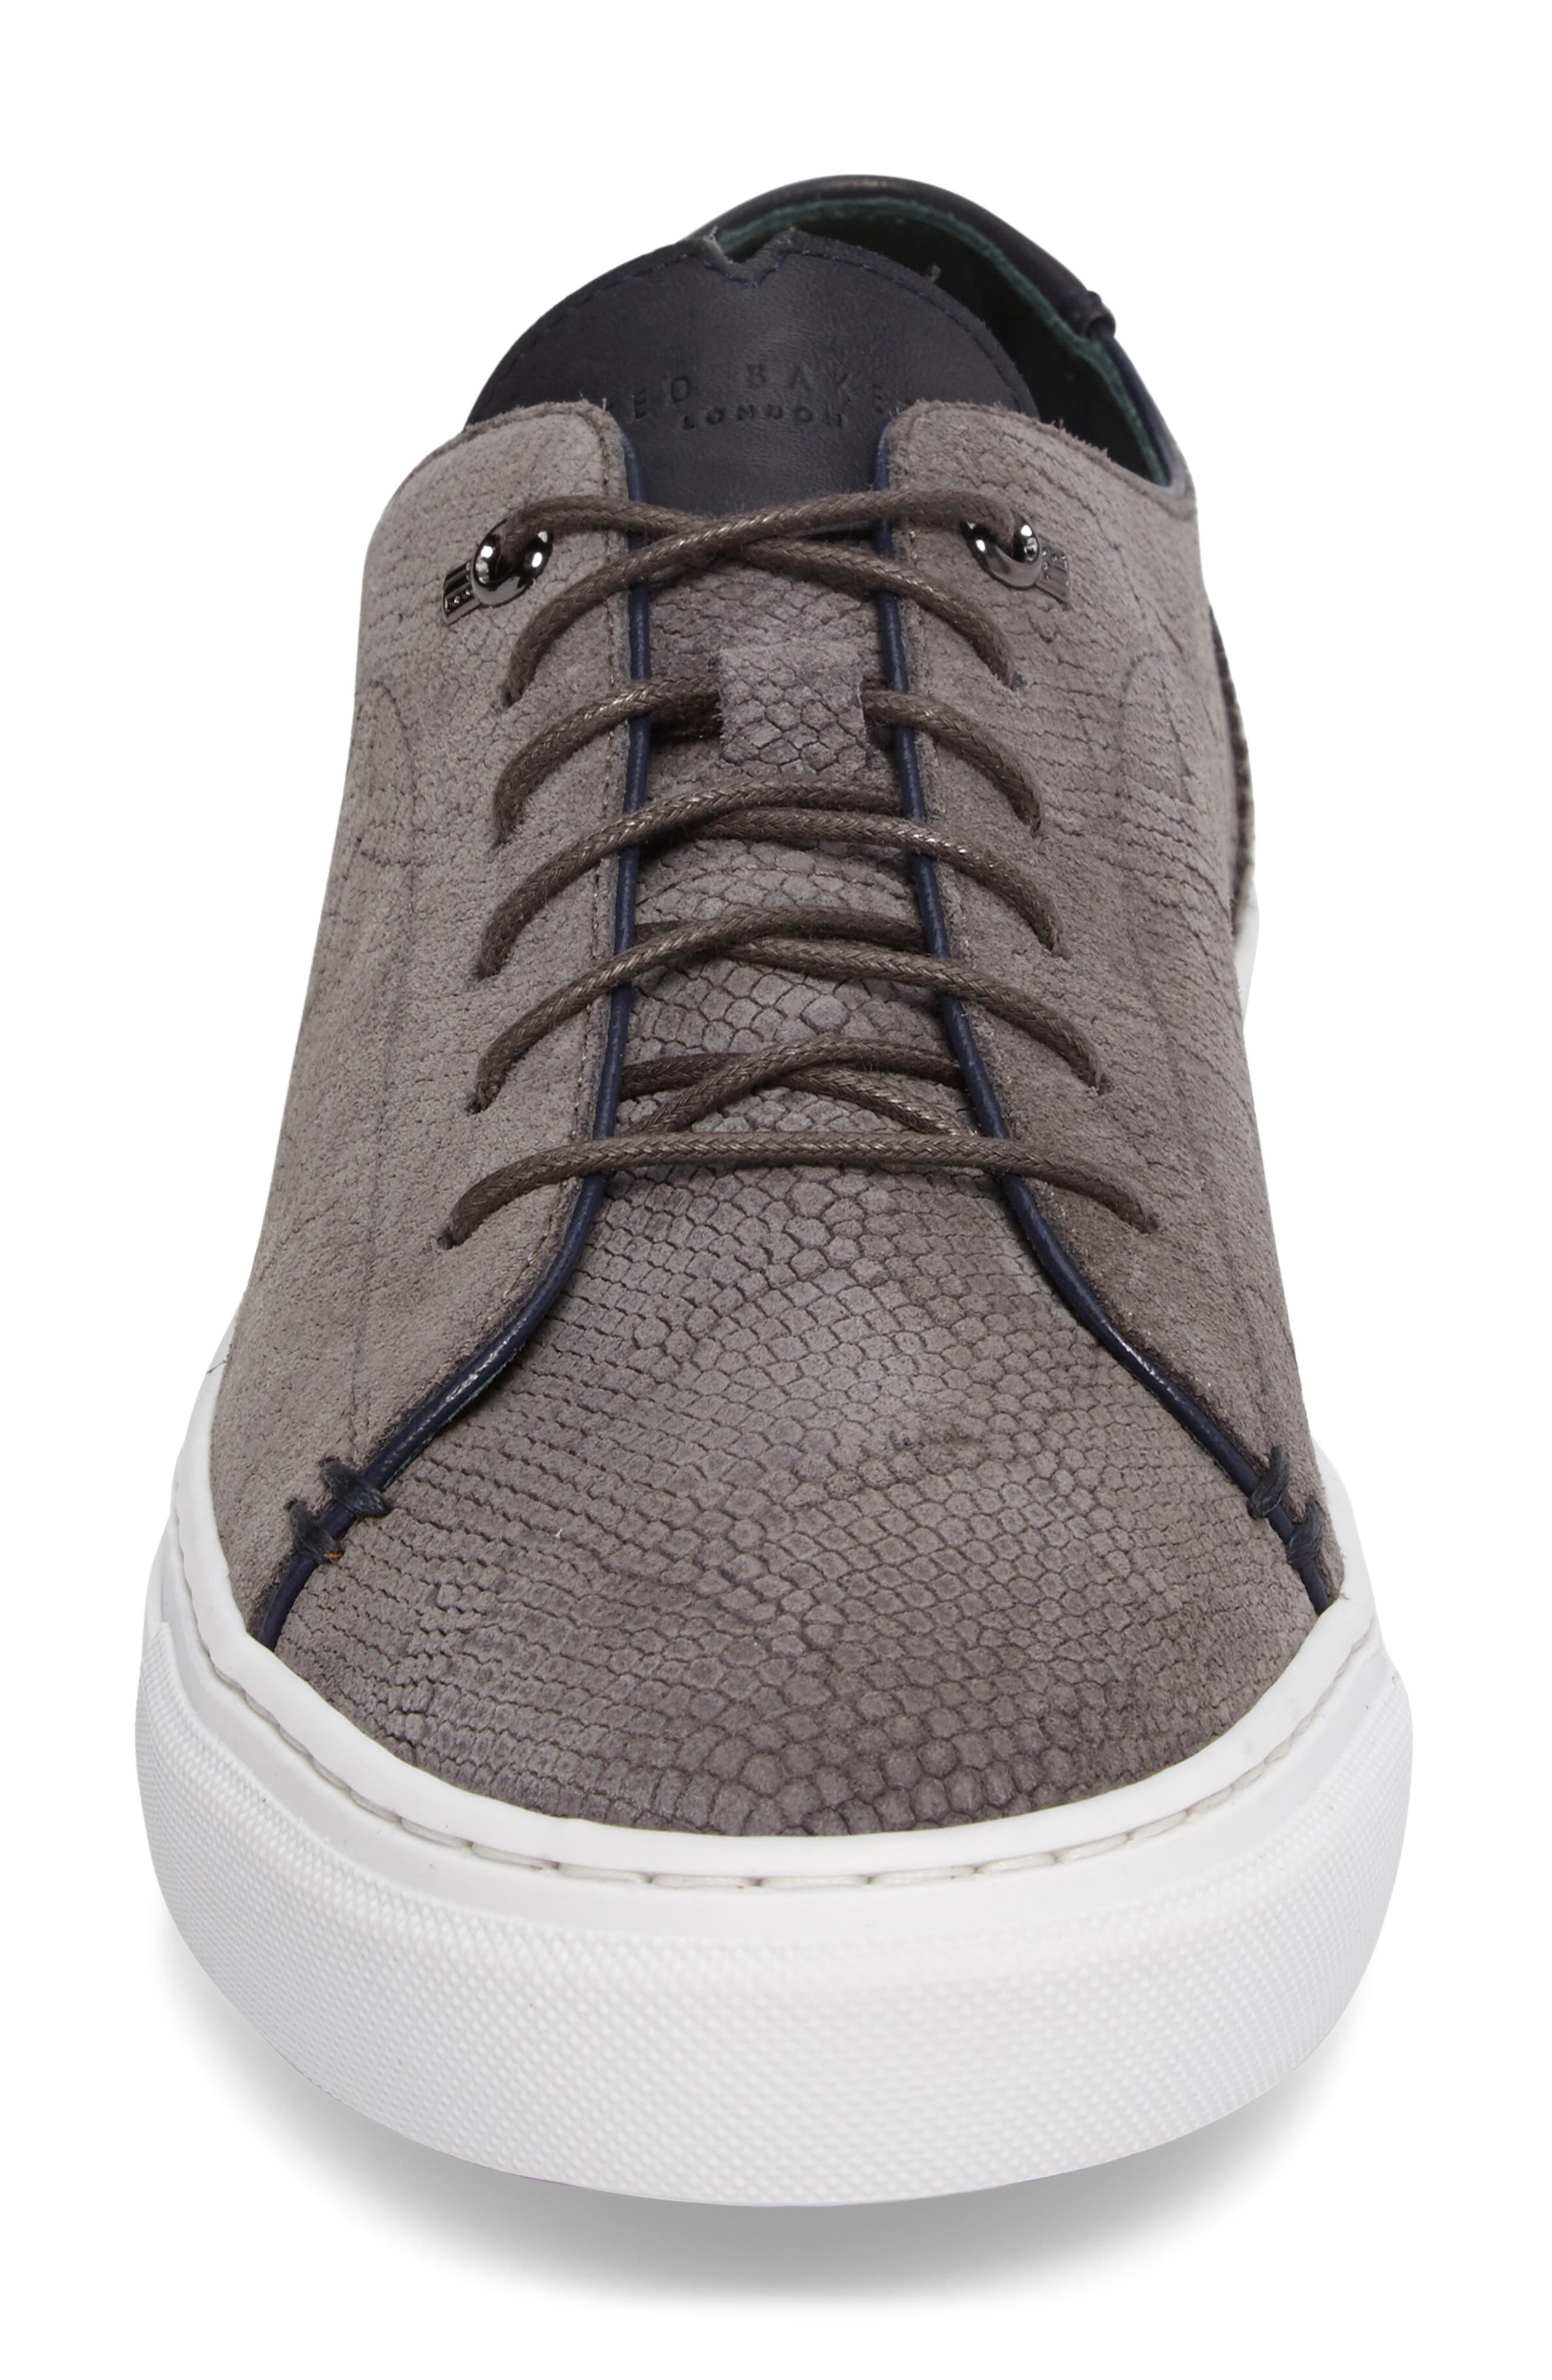 Duke Snake Embossed Sneaker,                             Alternate thumbnail 4, color,                             Dark Grey Suede